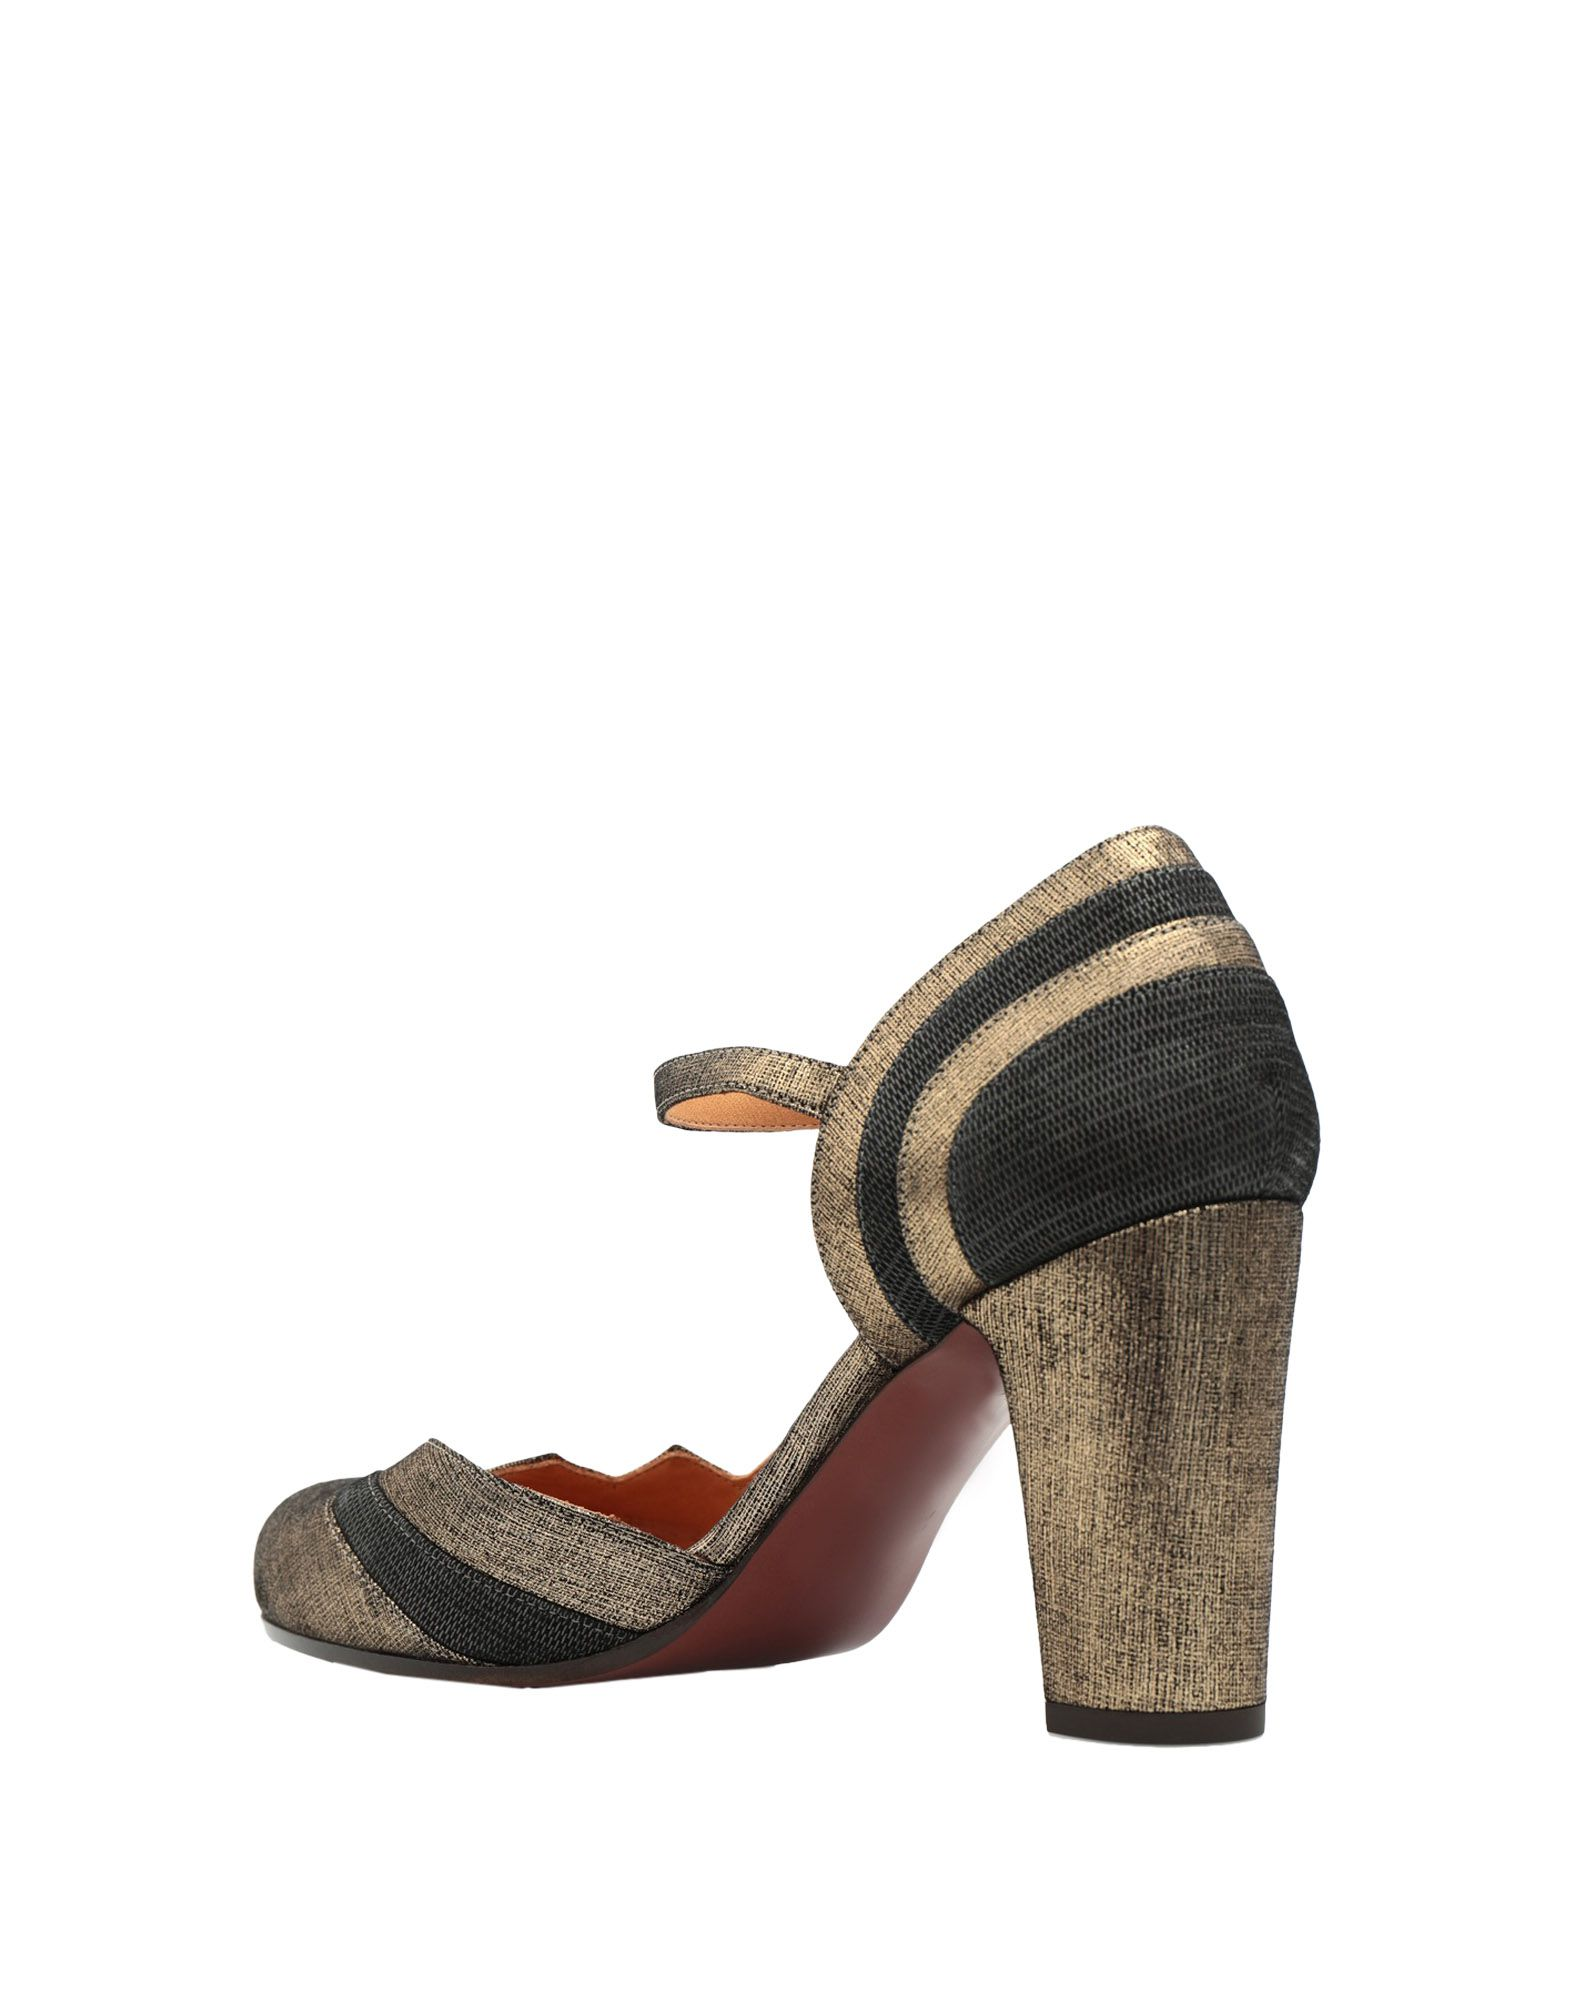 Chie Mihara Mihara Mihara Kiddy - Court - Women Chie Mihara Courts online on  United Kingdom - 11549770LM cdd09c